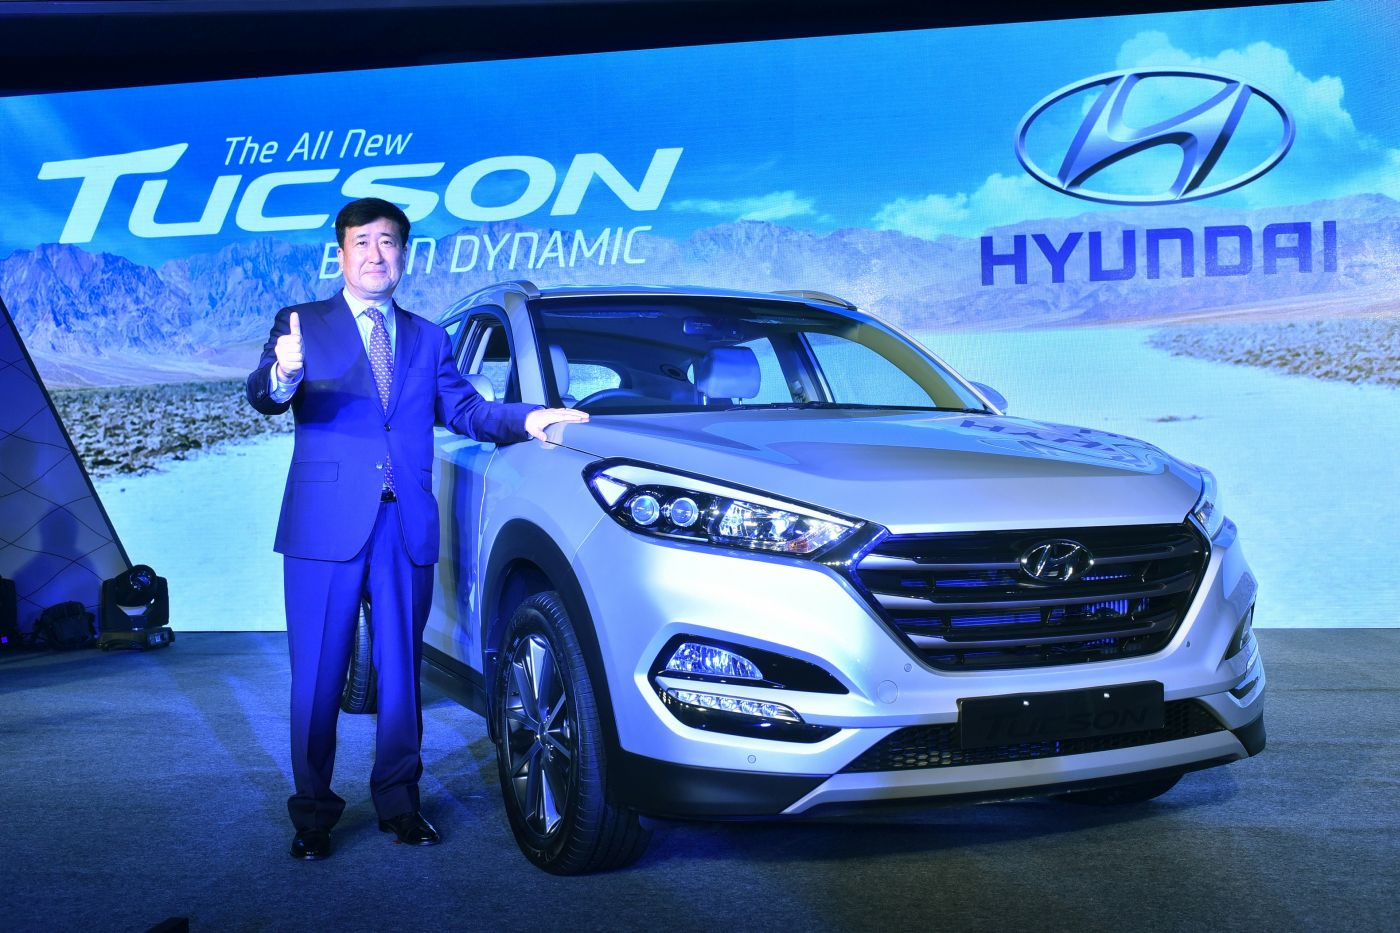 hyundai tucson the global suv launched in india price rs lakh. Black Bedroom Furniture Sets. Home Design Ideas